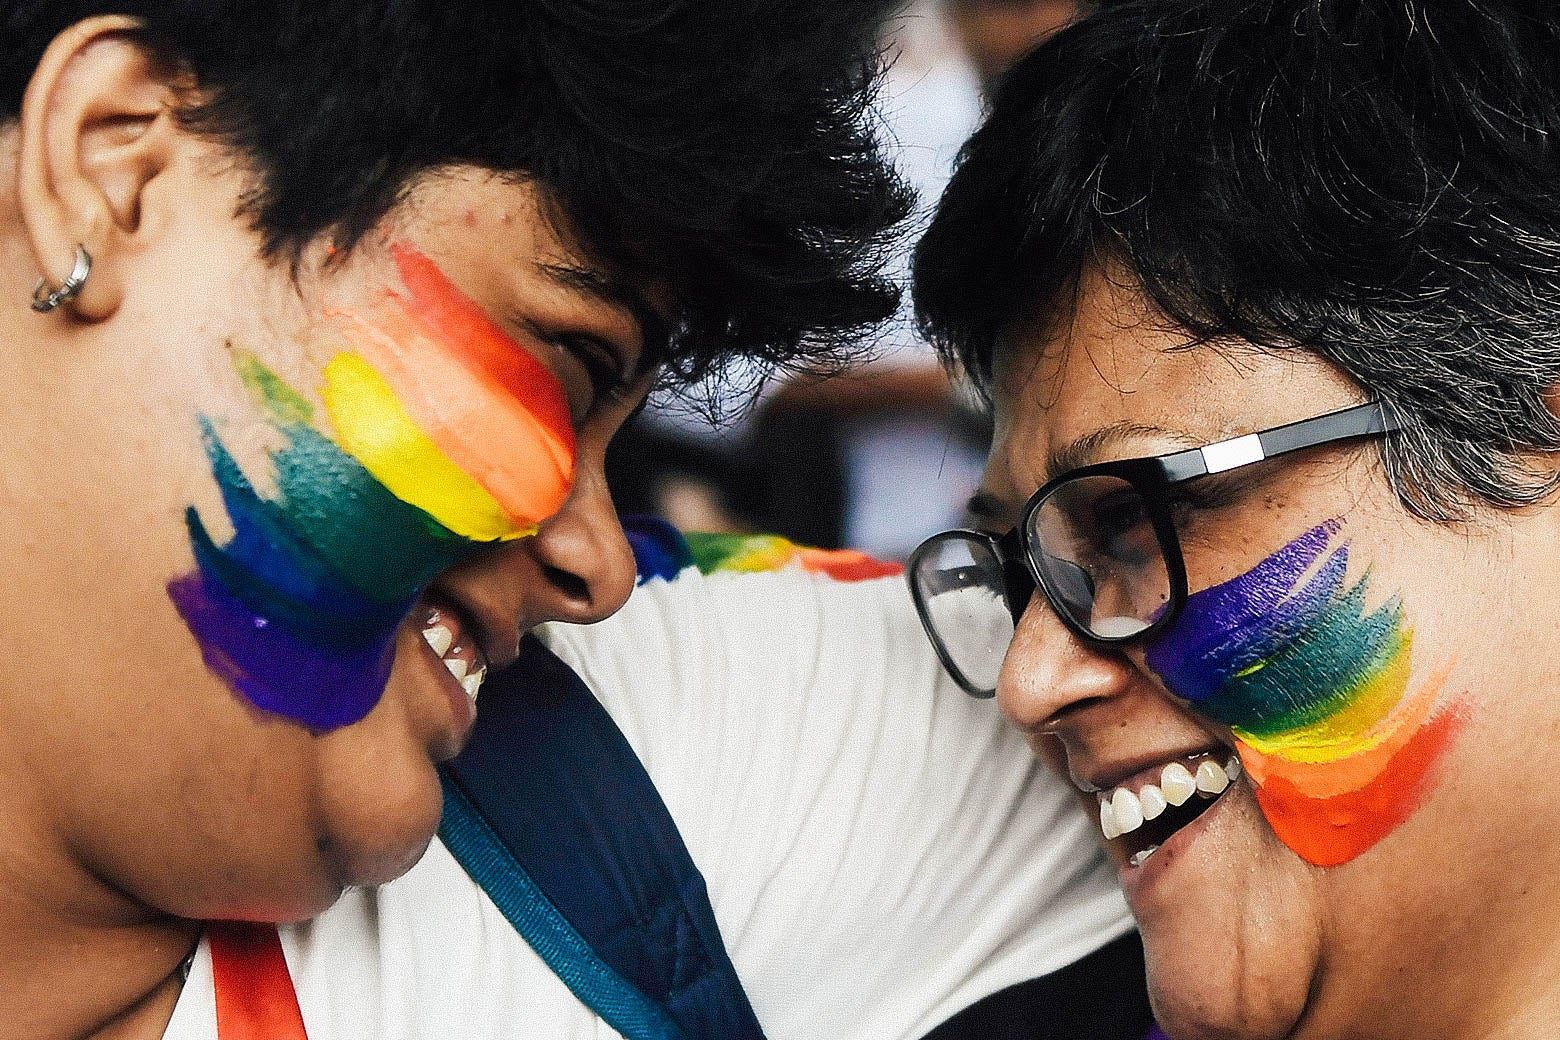 Two Indian supporters of the LGBTQ community celebrate with smiles and rainbow flag face paint on Thursday.